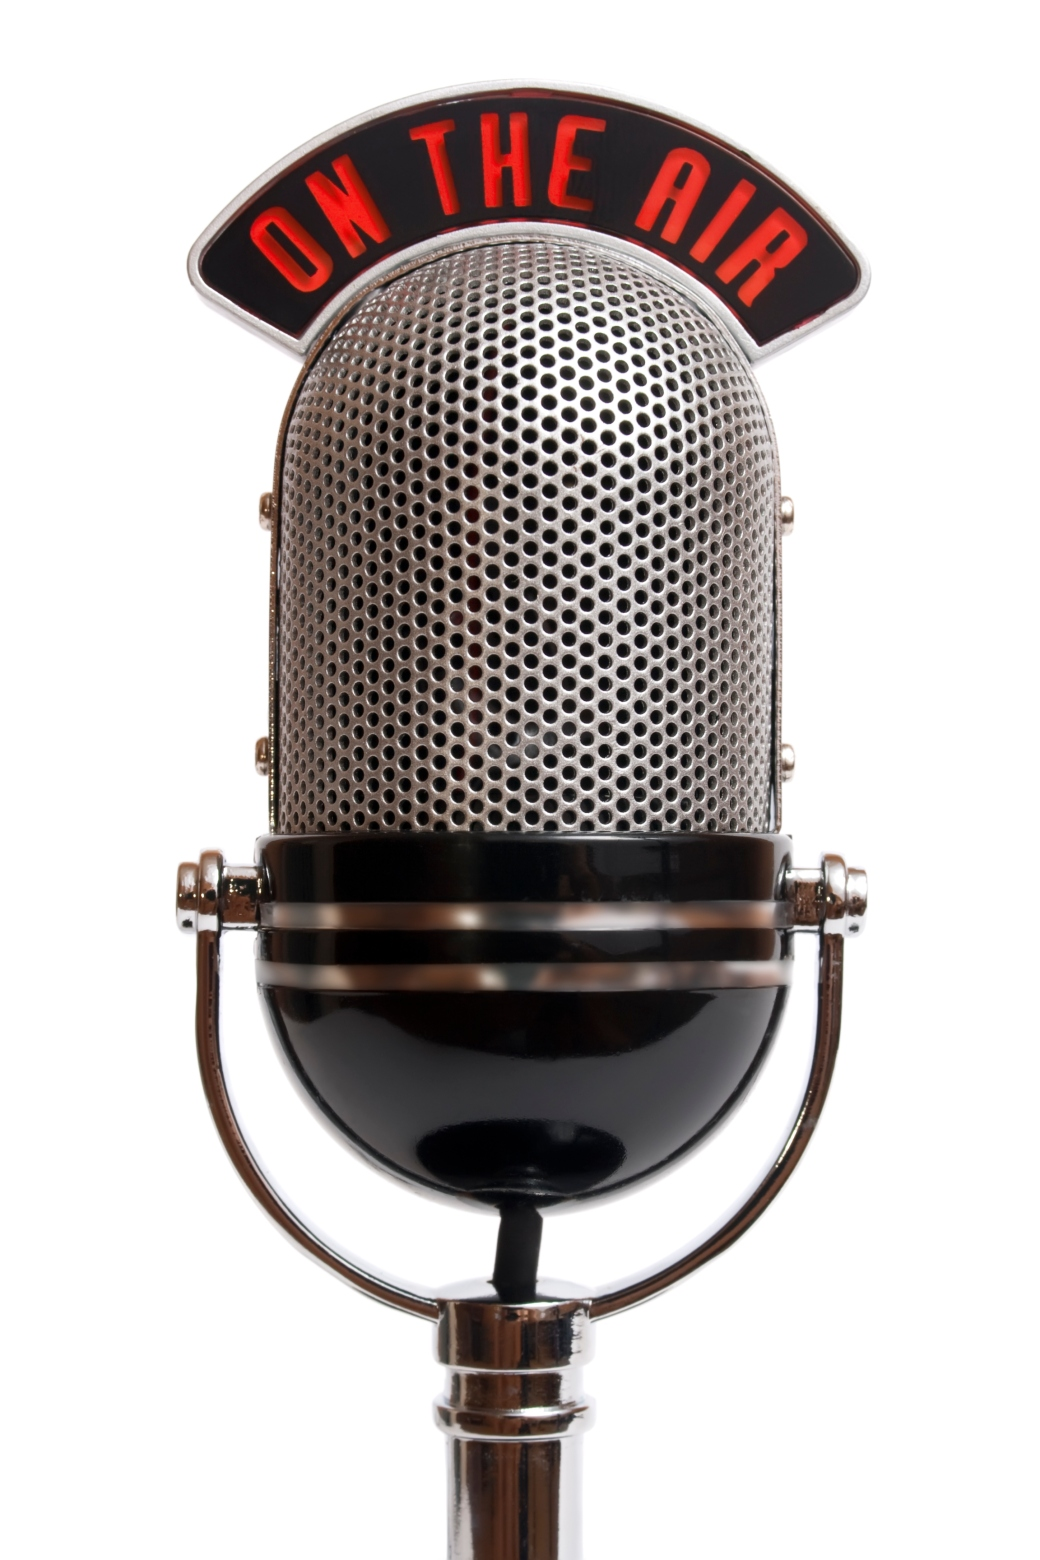 radio-microphone-clip-art-top-pictures-gallery-online-bi6e1j-clipart